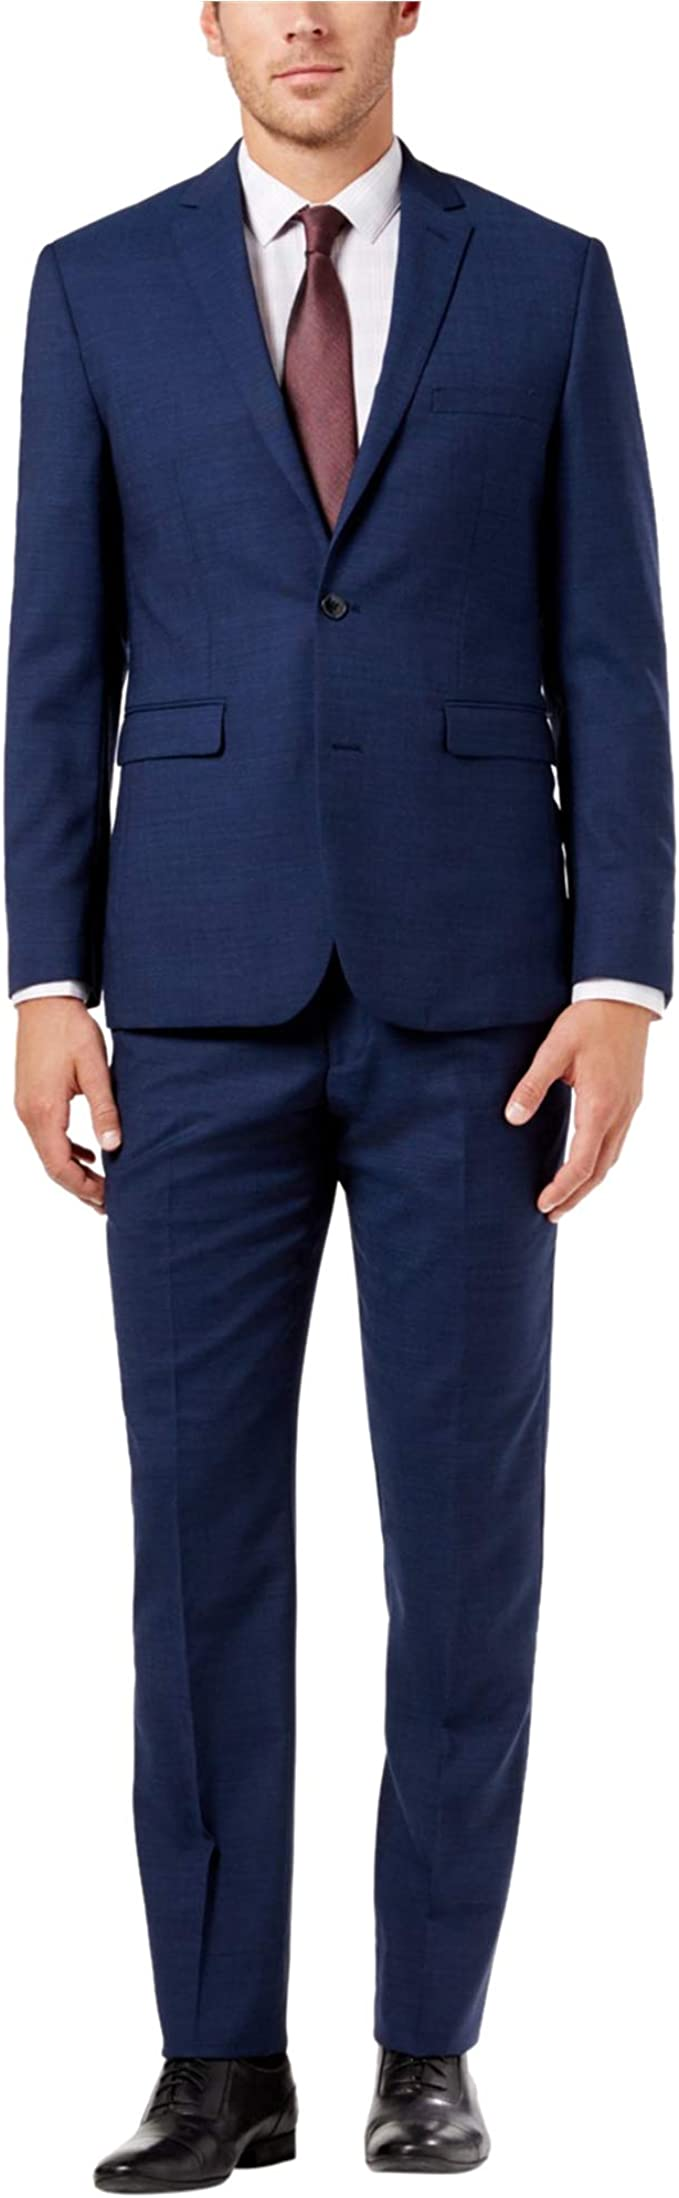 Vince Camuto Mens Modern Slim Navy Chambray Suit